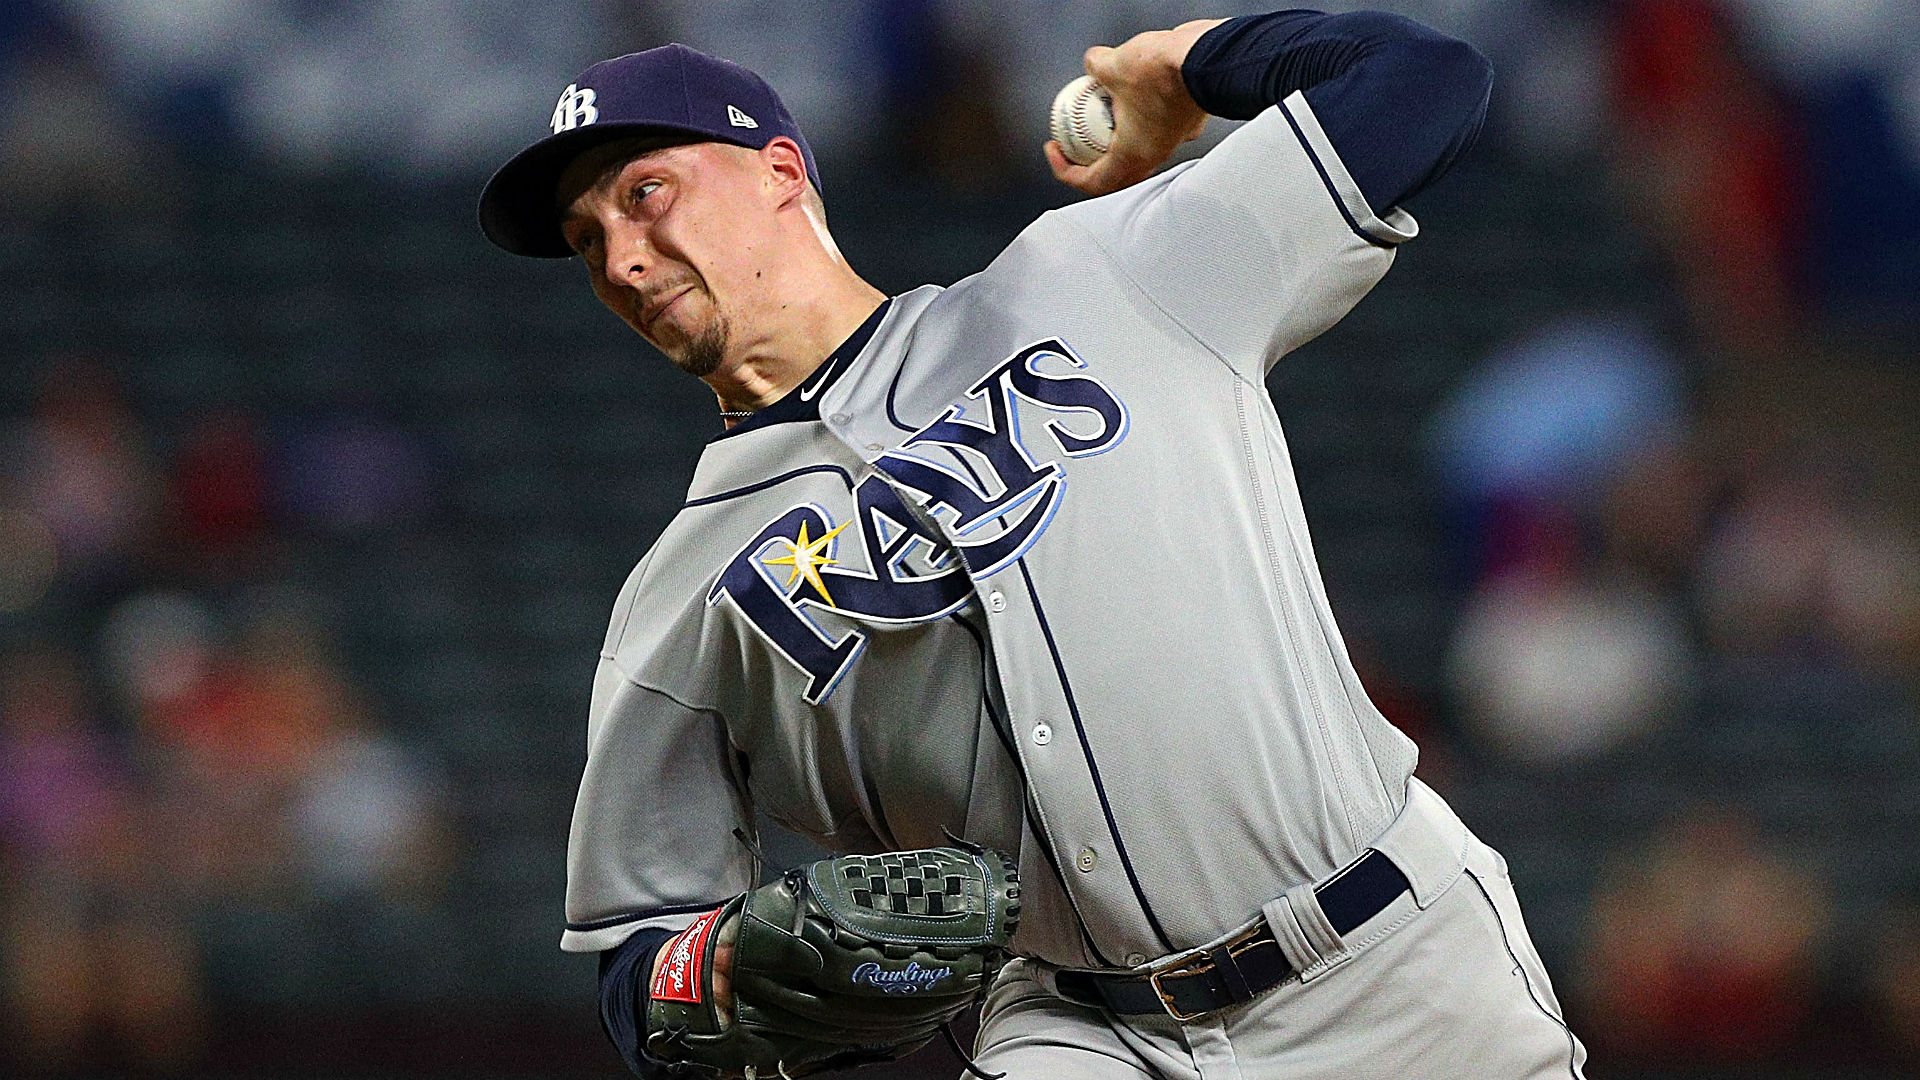 World Series Game 6 Quick hook of Rays Blake Snell backfires and Twitter fries Kevin Cash